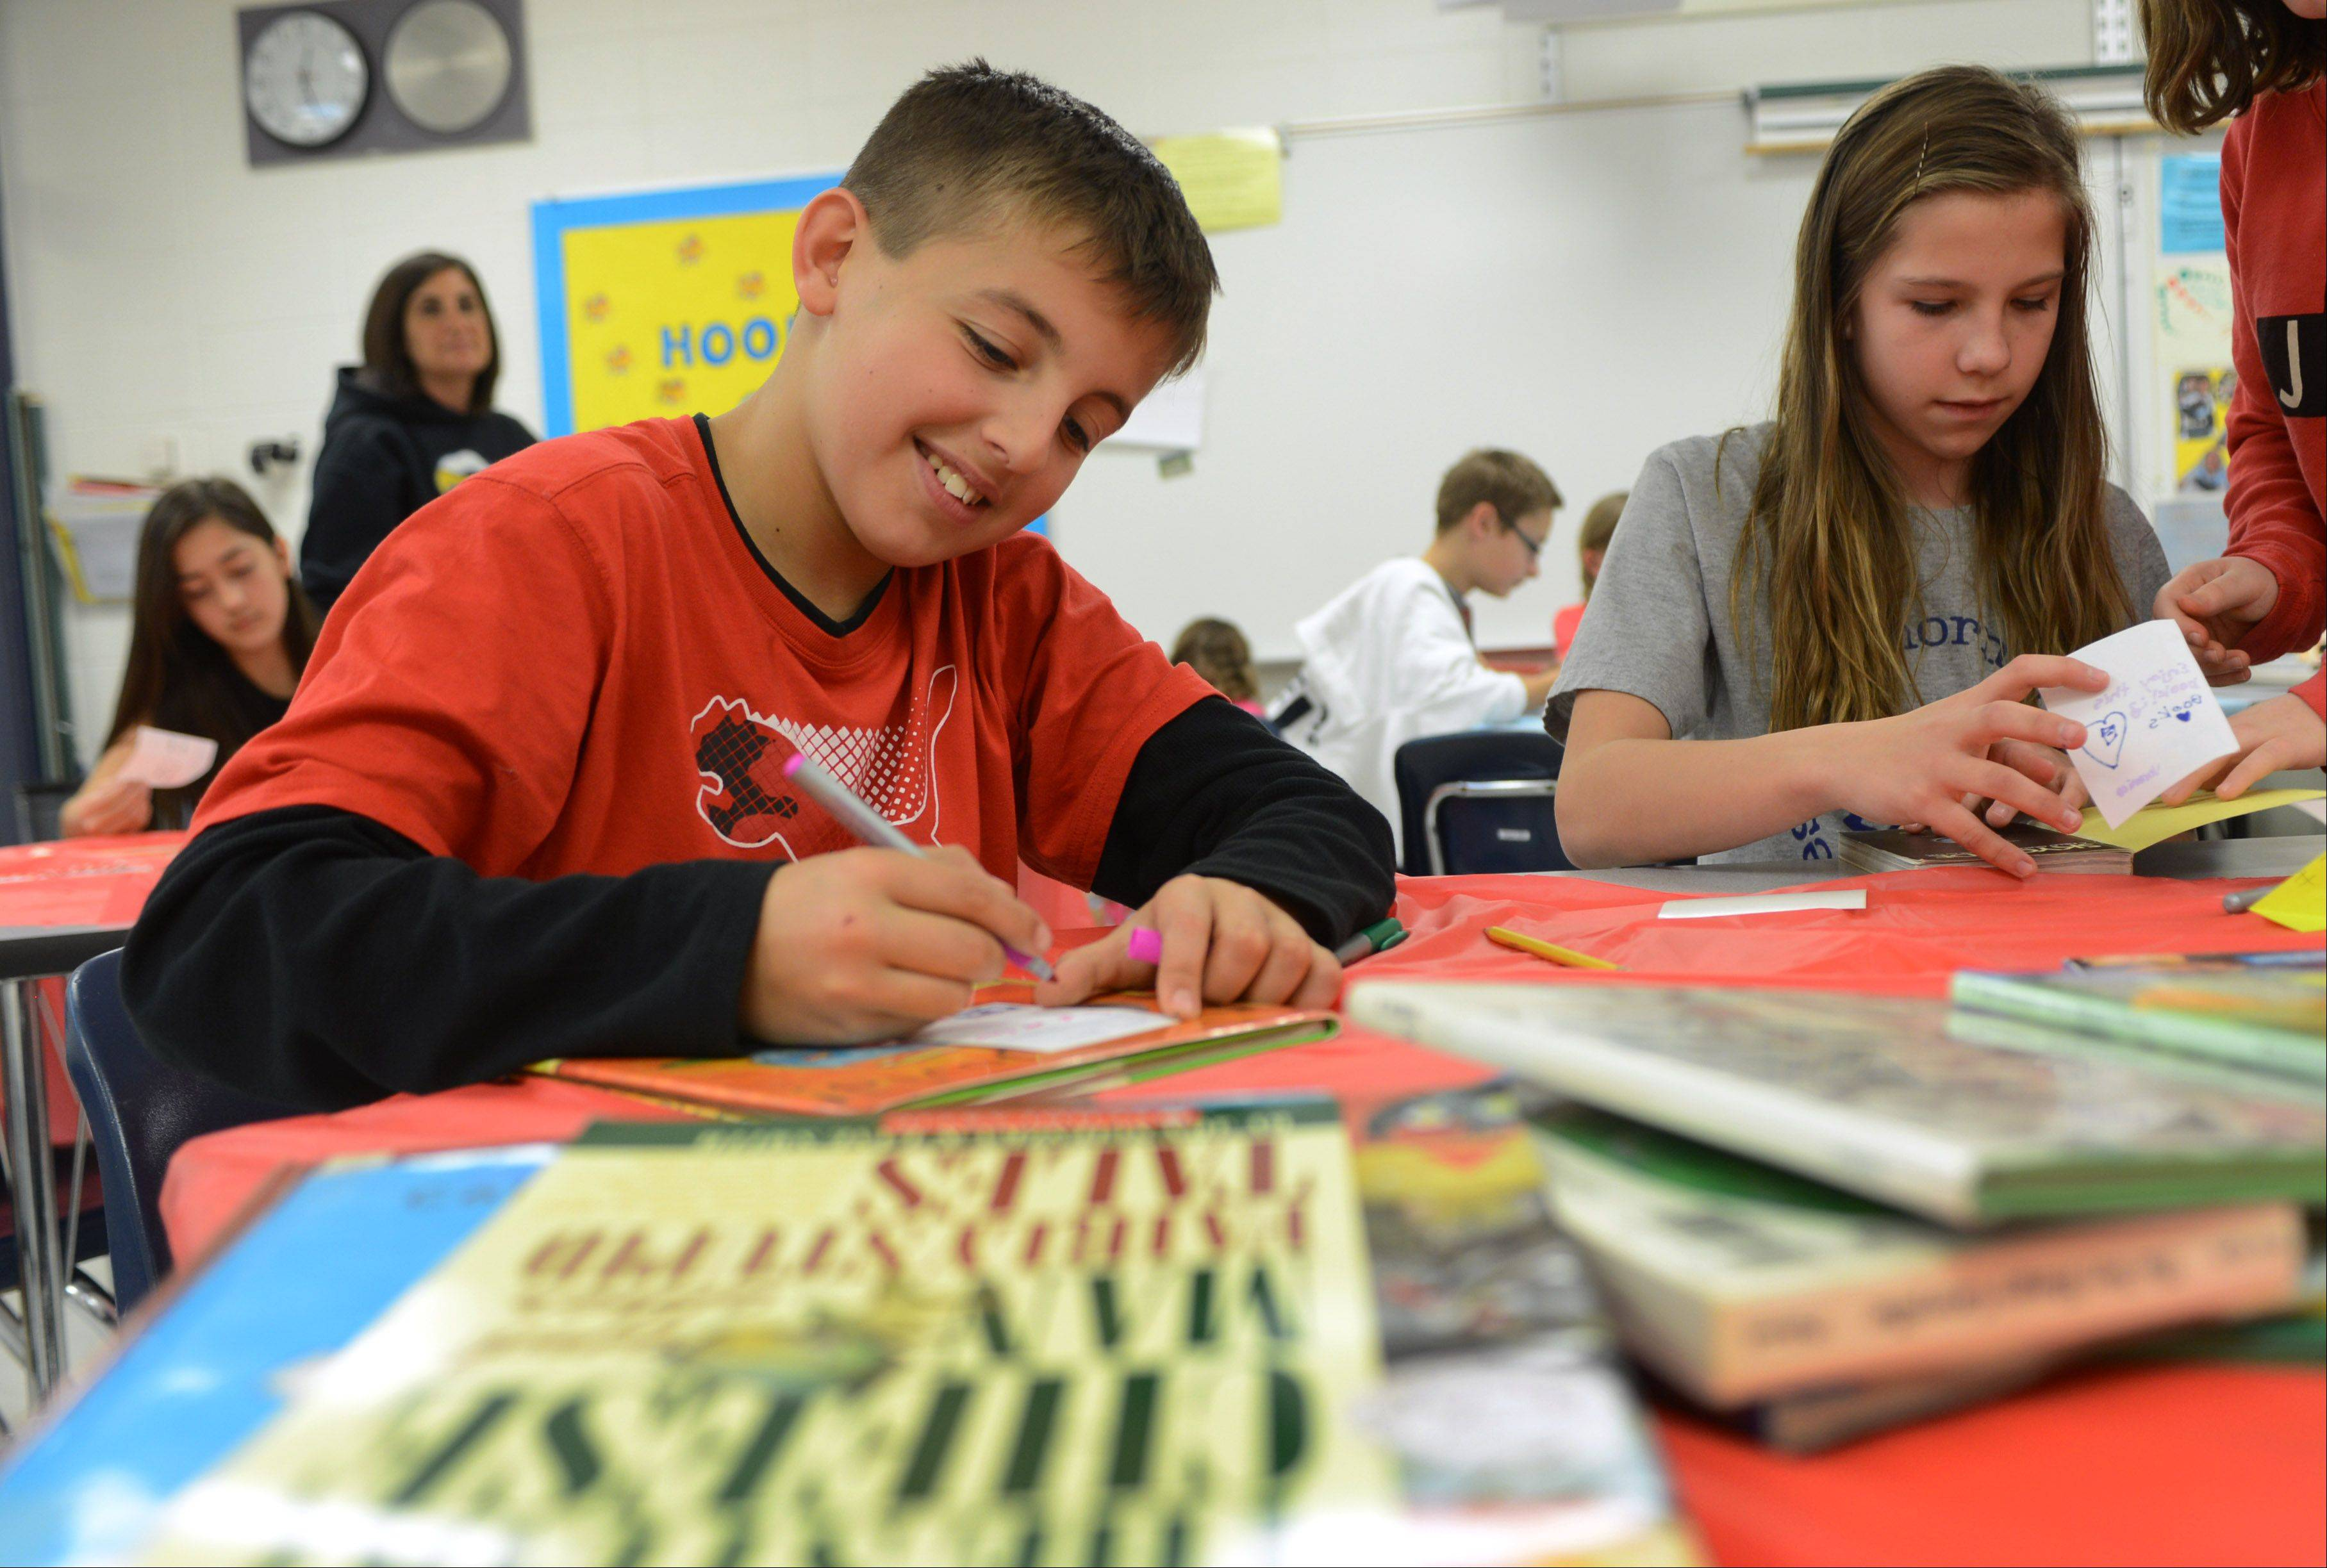 Hawthorn Middle School North sixth grade students Michael Svistun, left, and Veronica Gawin write personal notes to place inside donated books at the Vernon Hills school Friday. Students in Rachel Serlin's Language Arts classes collected around 500 books to donate to PADS Lake County.